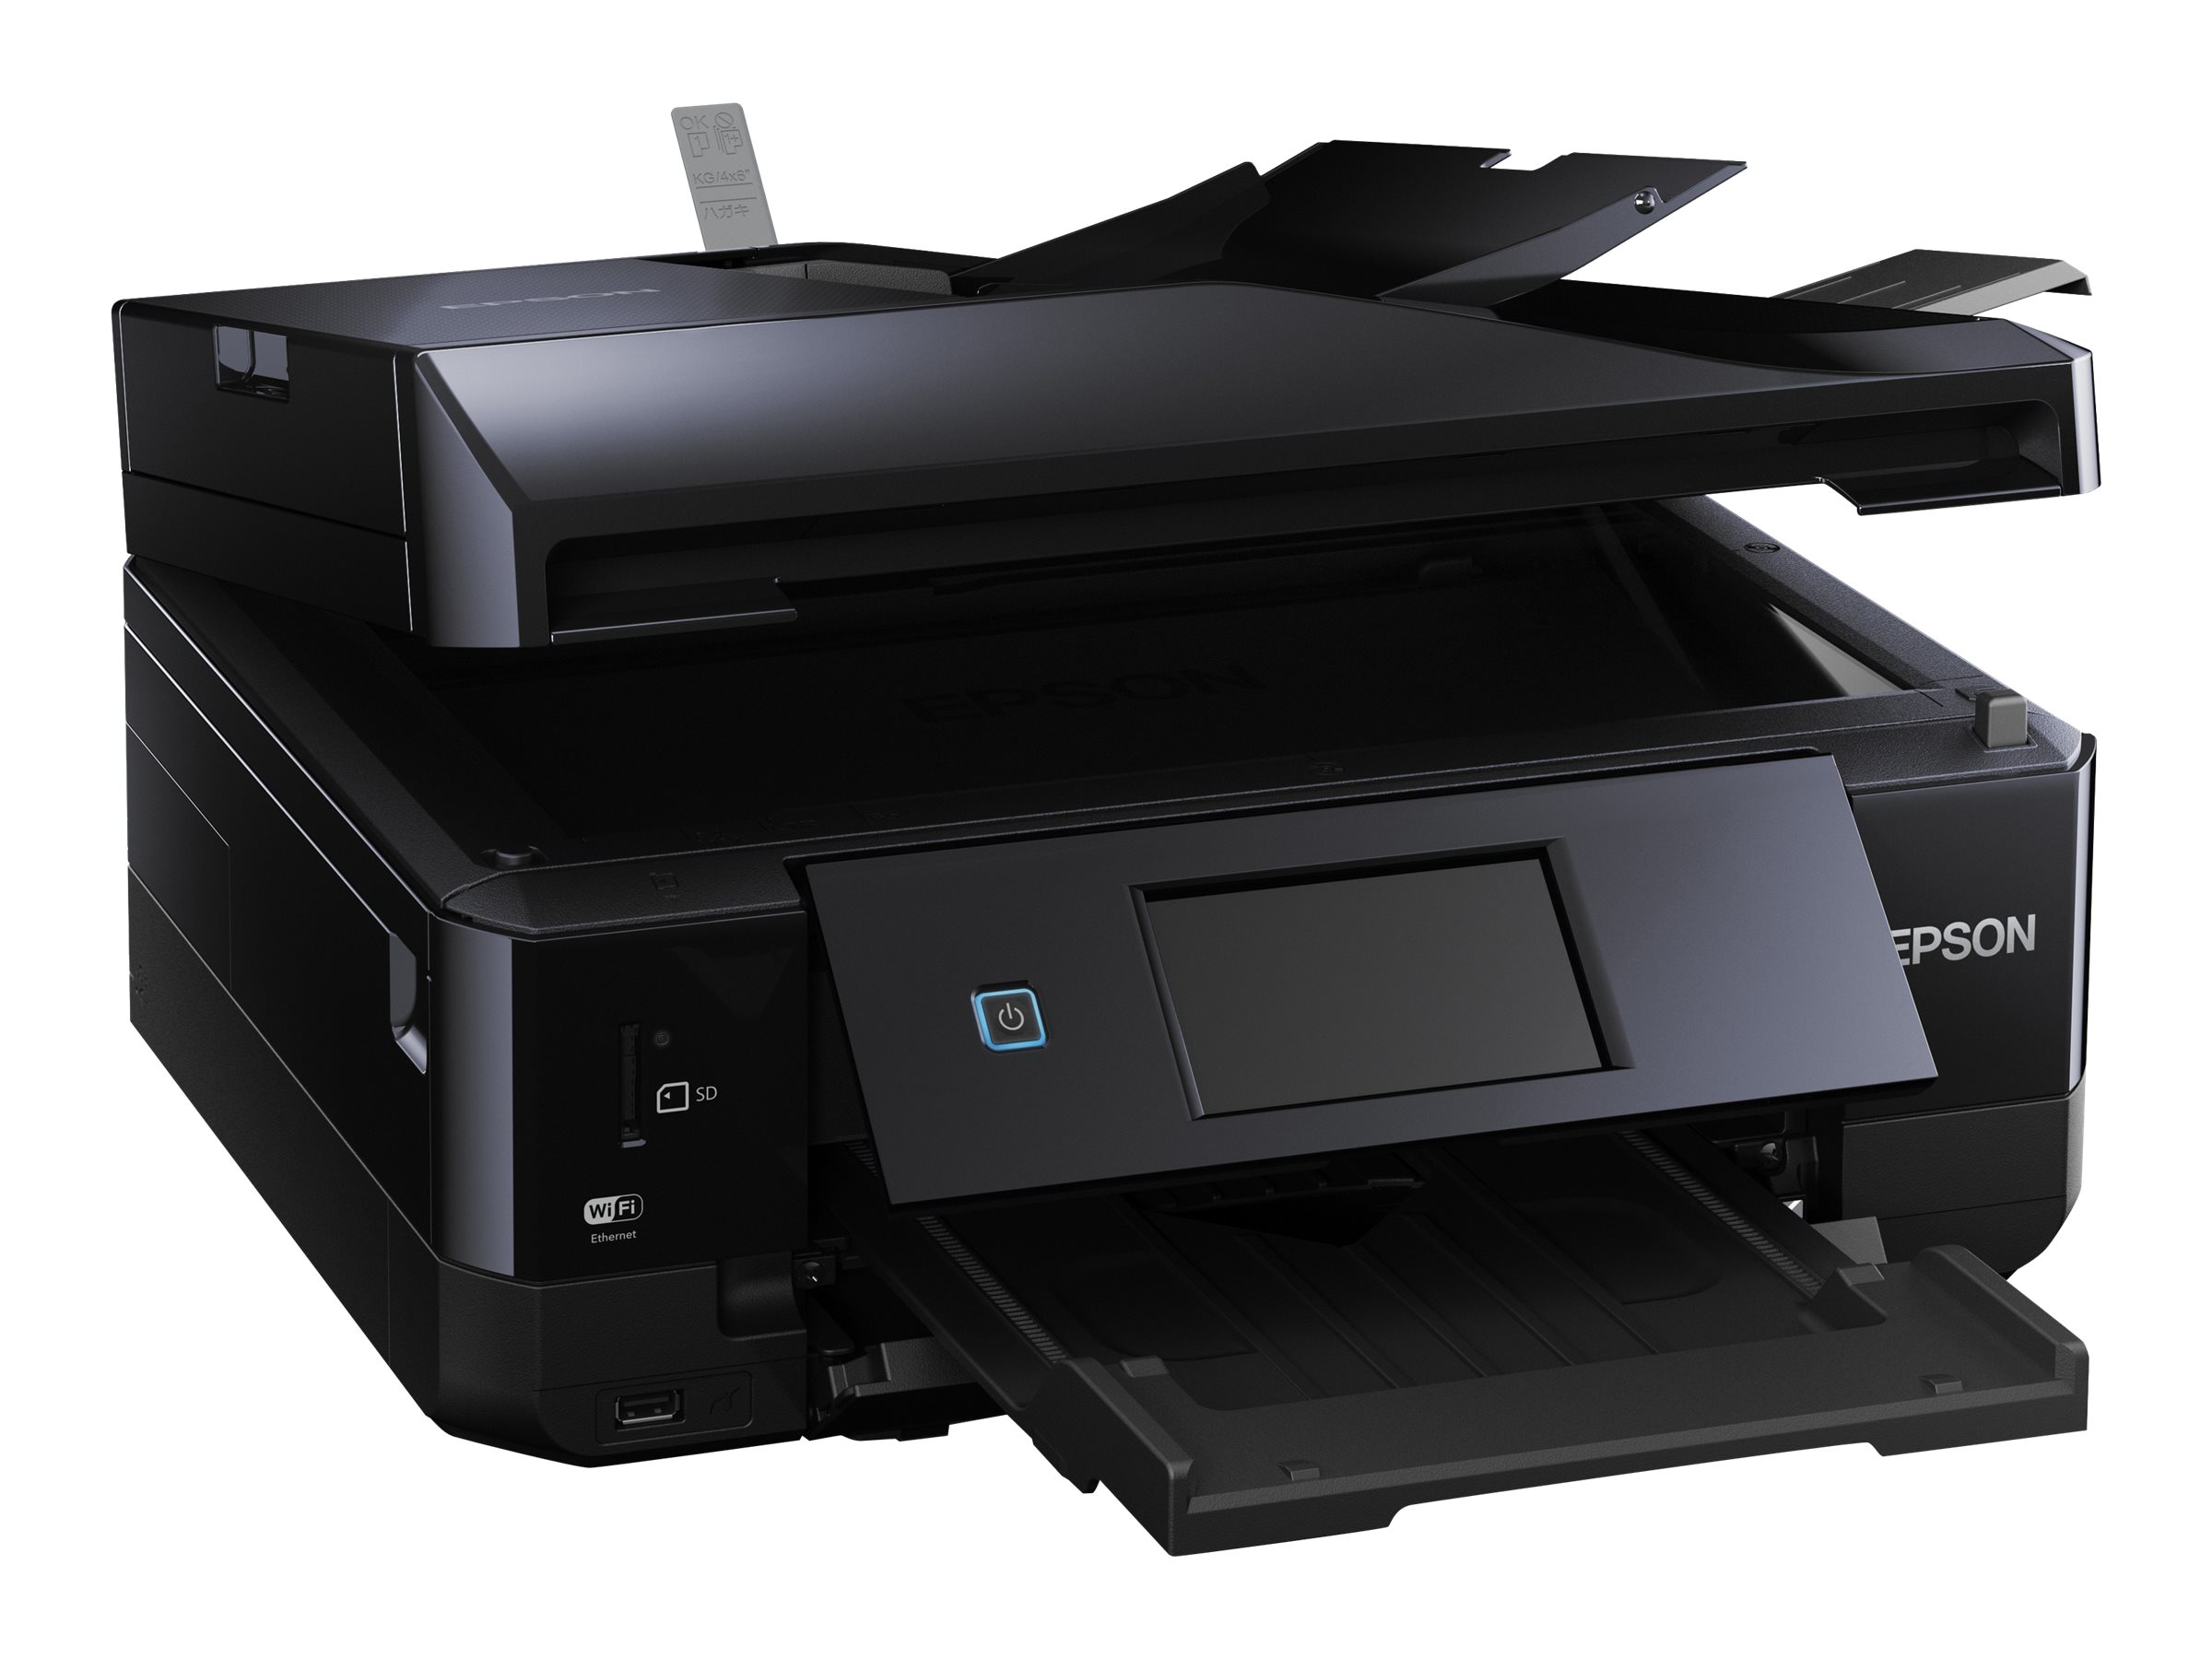 Epson Expression Premium XP-830 - Multifunktionsdrucker - Farbe - Tintenstrahl - A4/Legal (Medien)